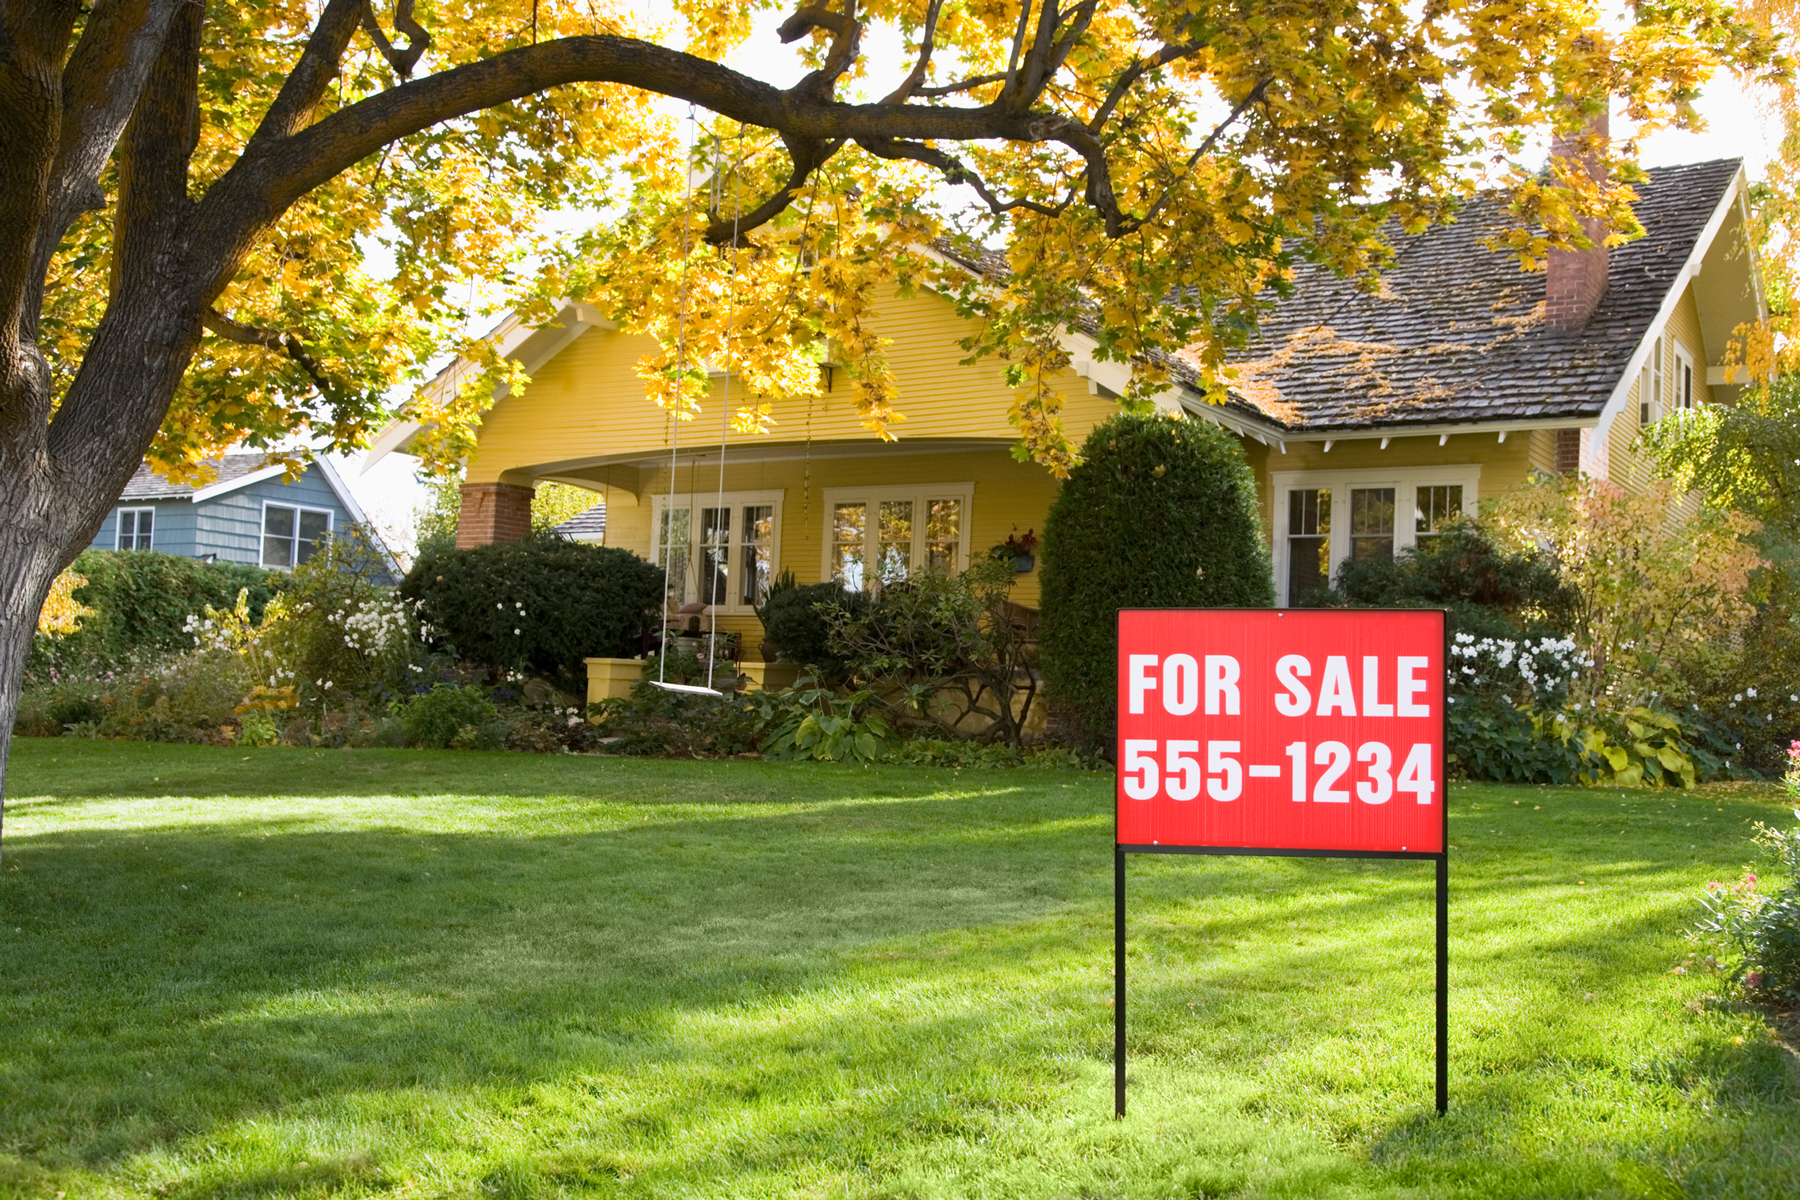 5 Secrets to Selling Your Home During the Slow Season on home security tips, home inspection tips, home business tips, home design tips, home packing tips,